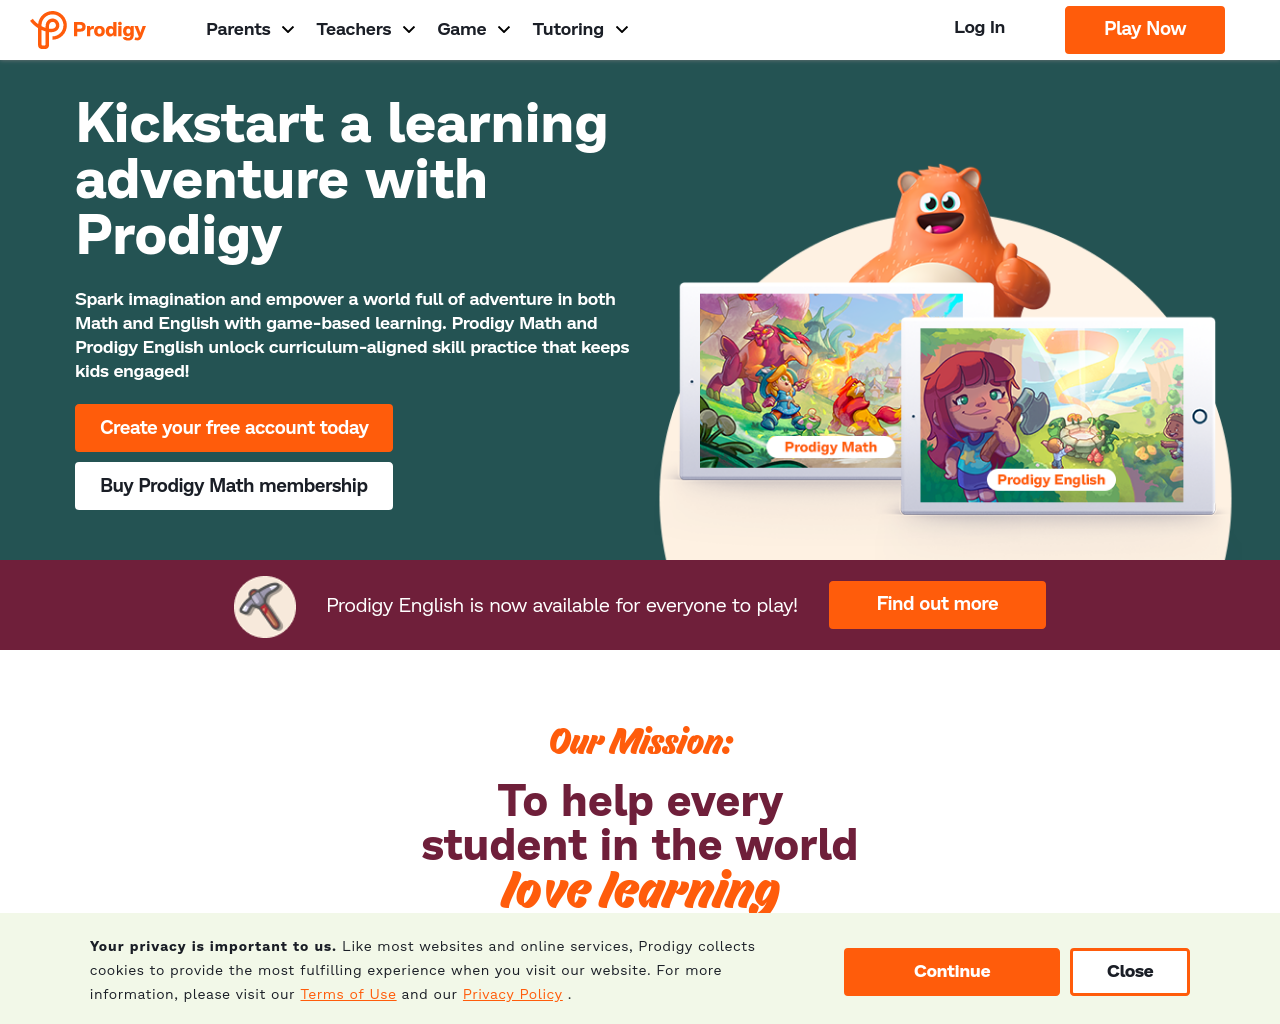 Prodigy Games